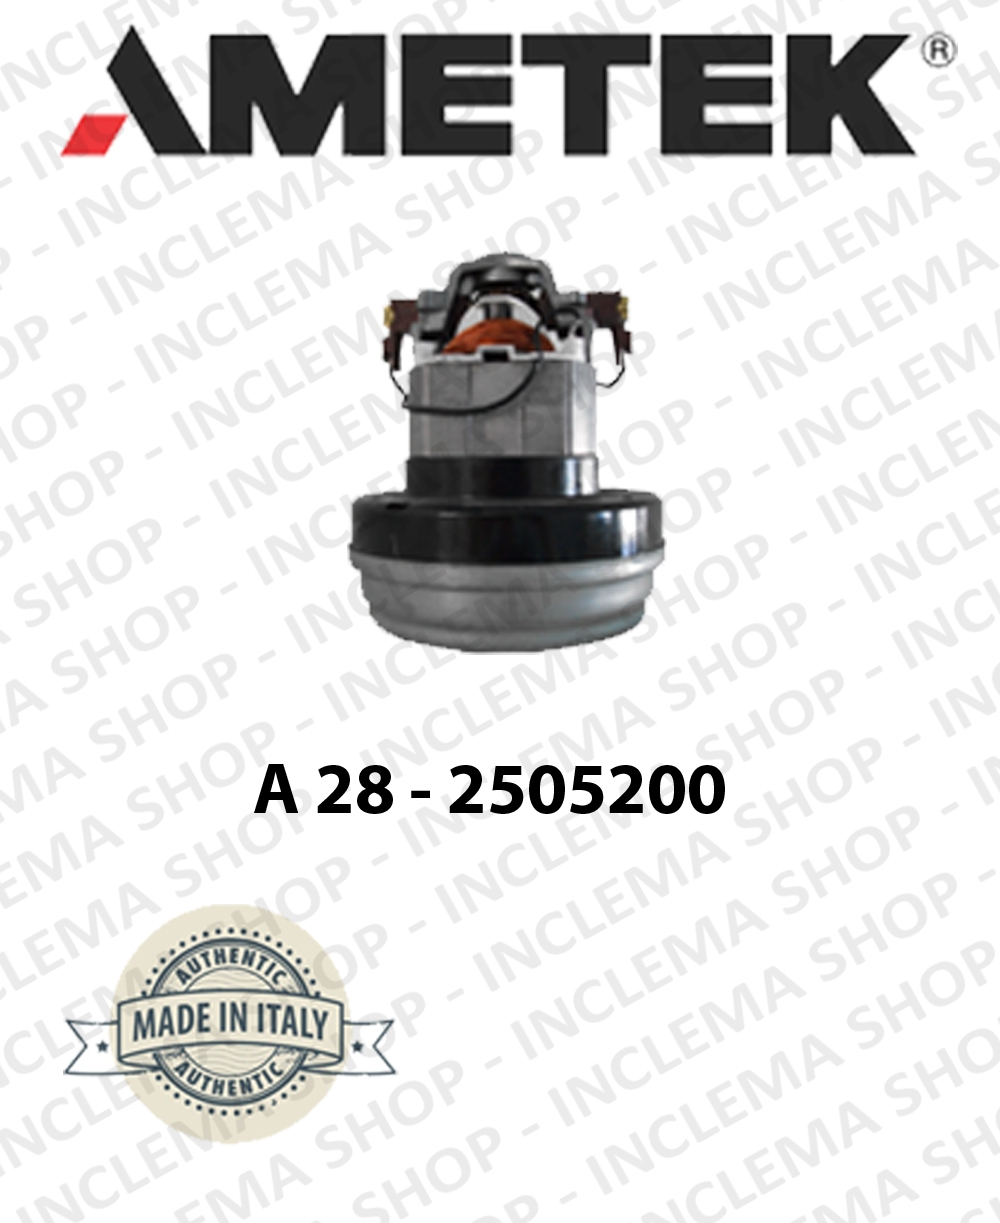 Vacuum motor A28 - 2505200 AMETEK ITALIA for vacuum cleaner